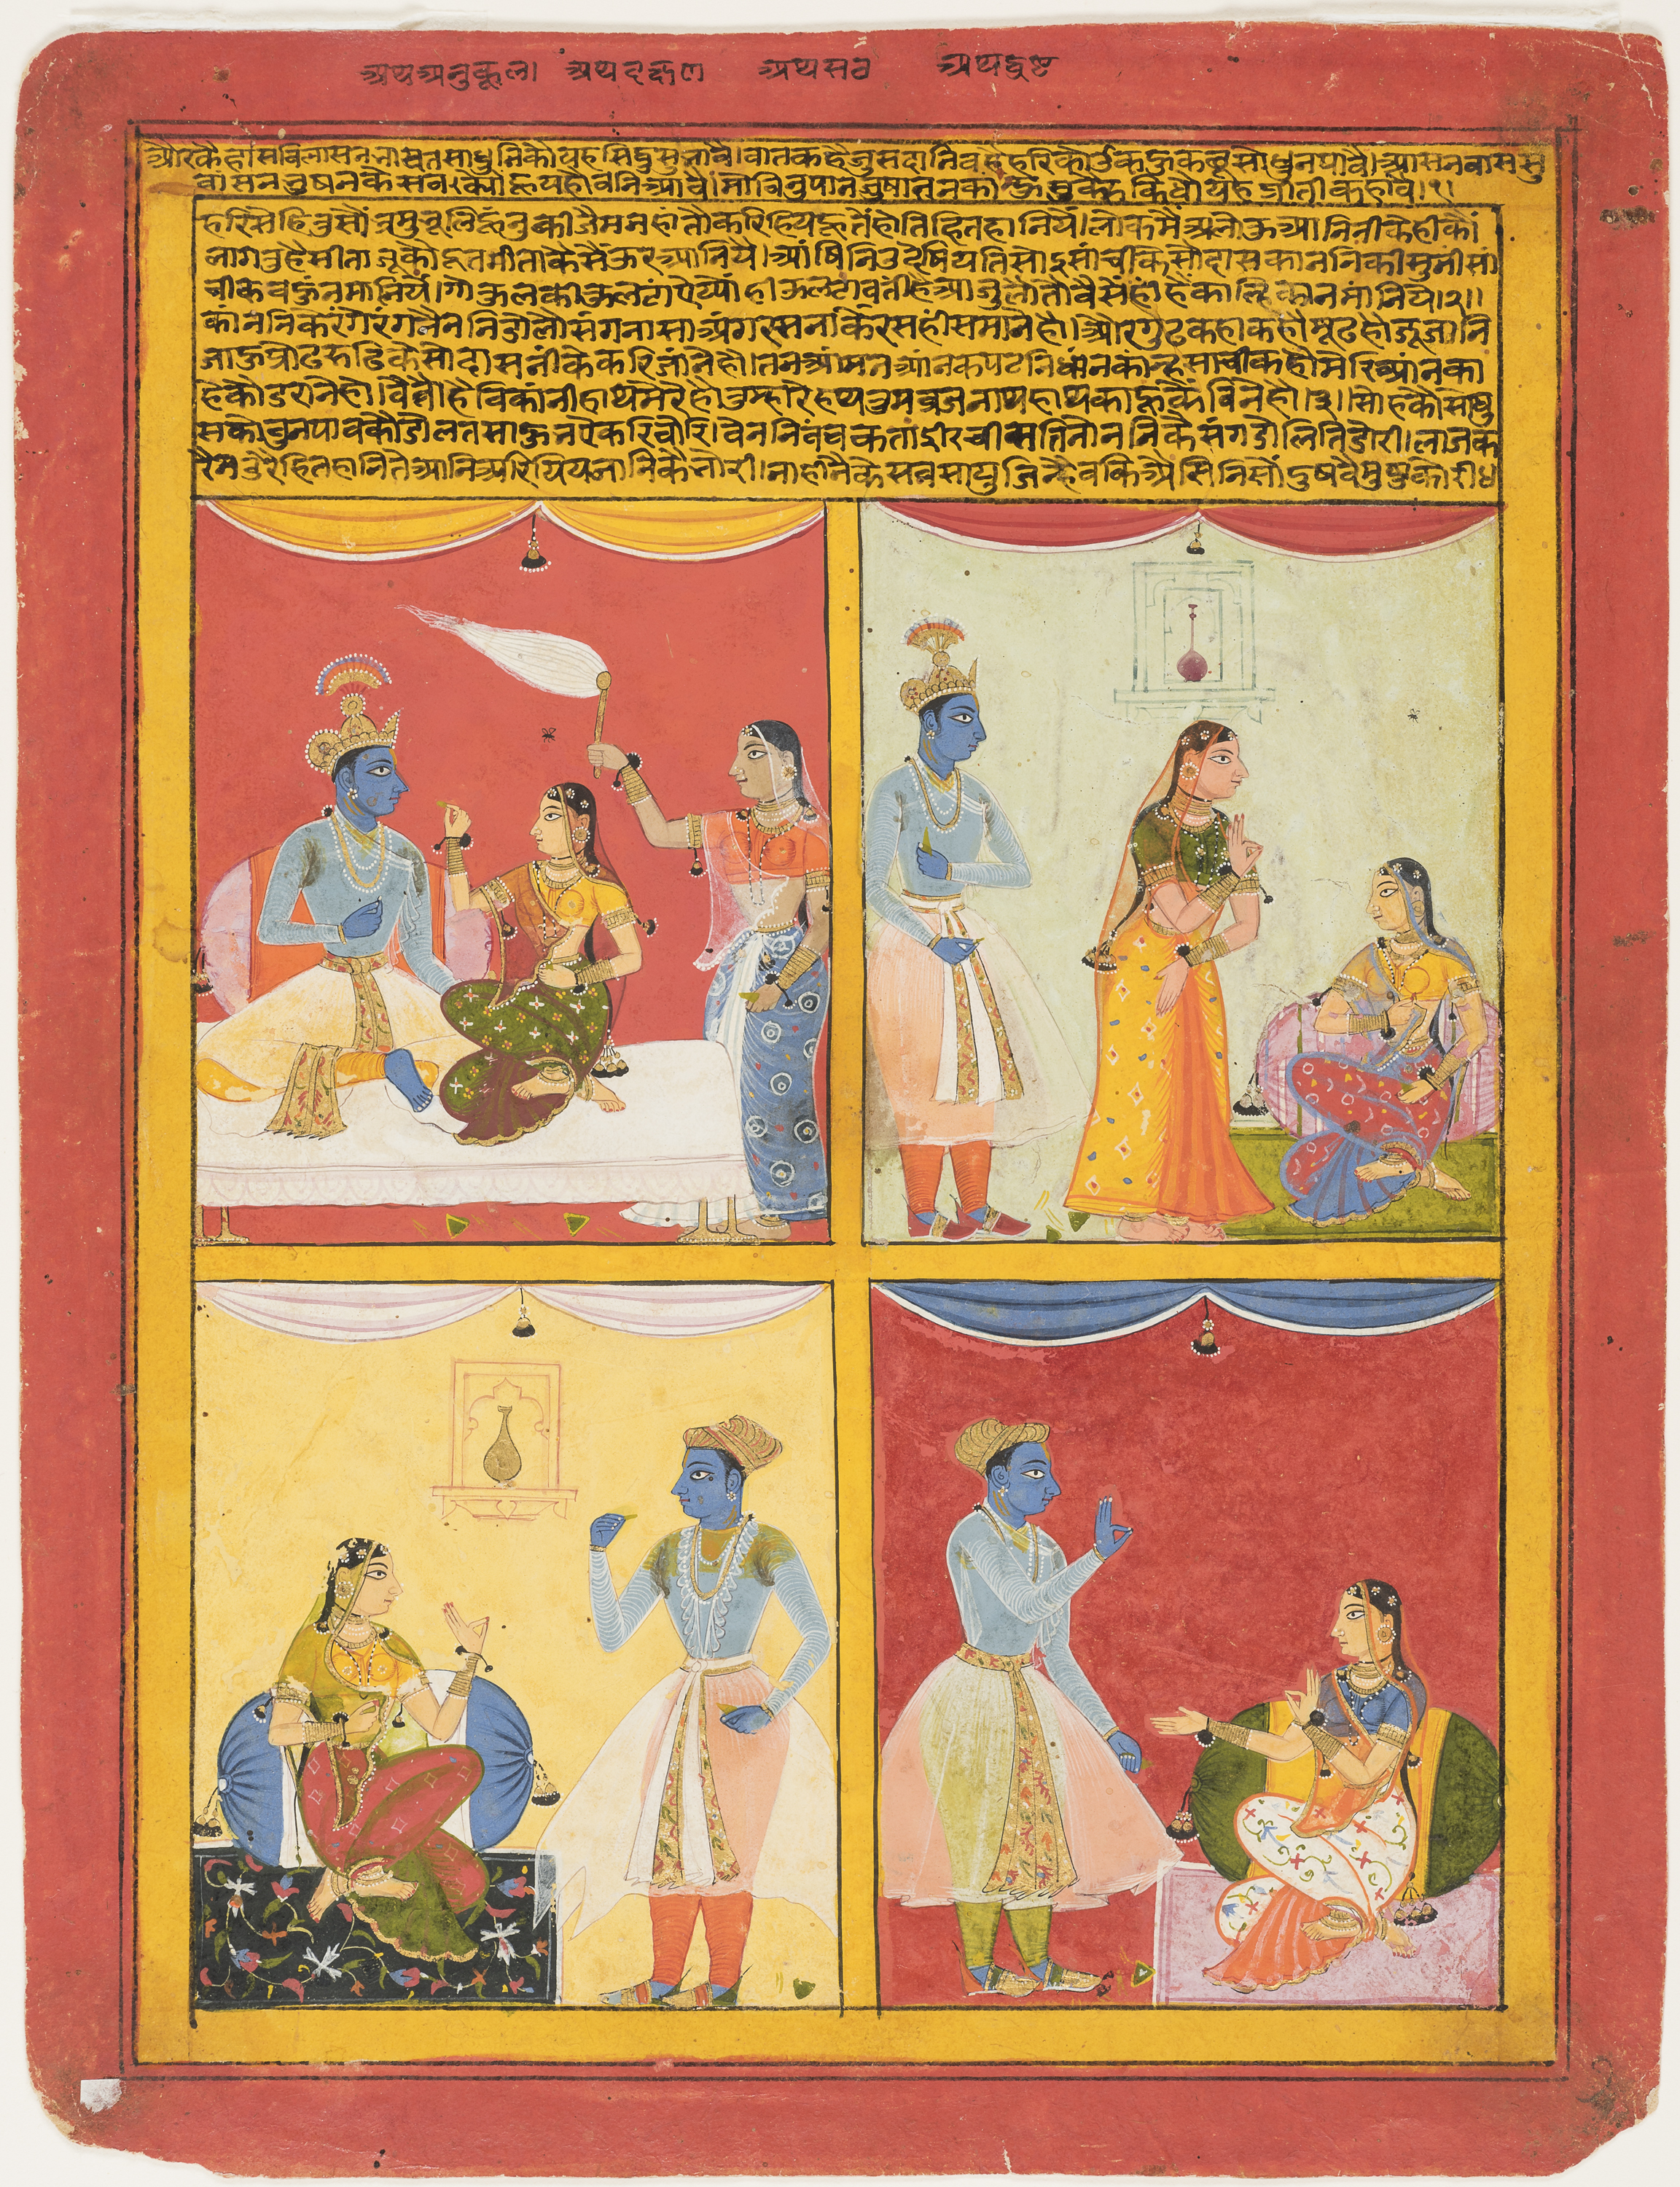 Udaipur, India, Four types of lovers. Folio from a Rasikapriya (The Lover's Breviary), 1630s. Opaque watercolor and gold on paper. Edwin Binney 3rd Collection.